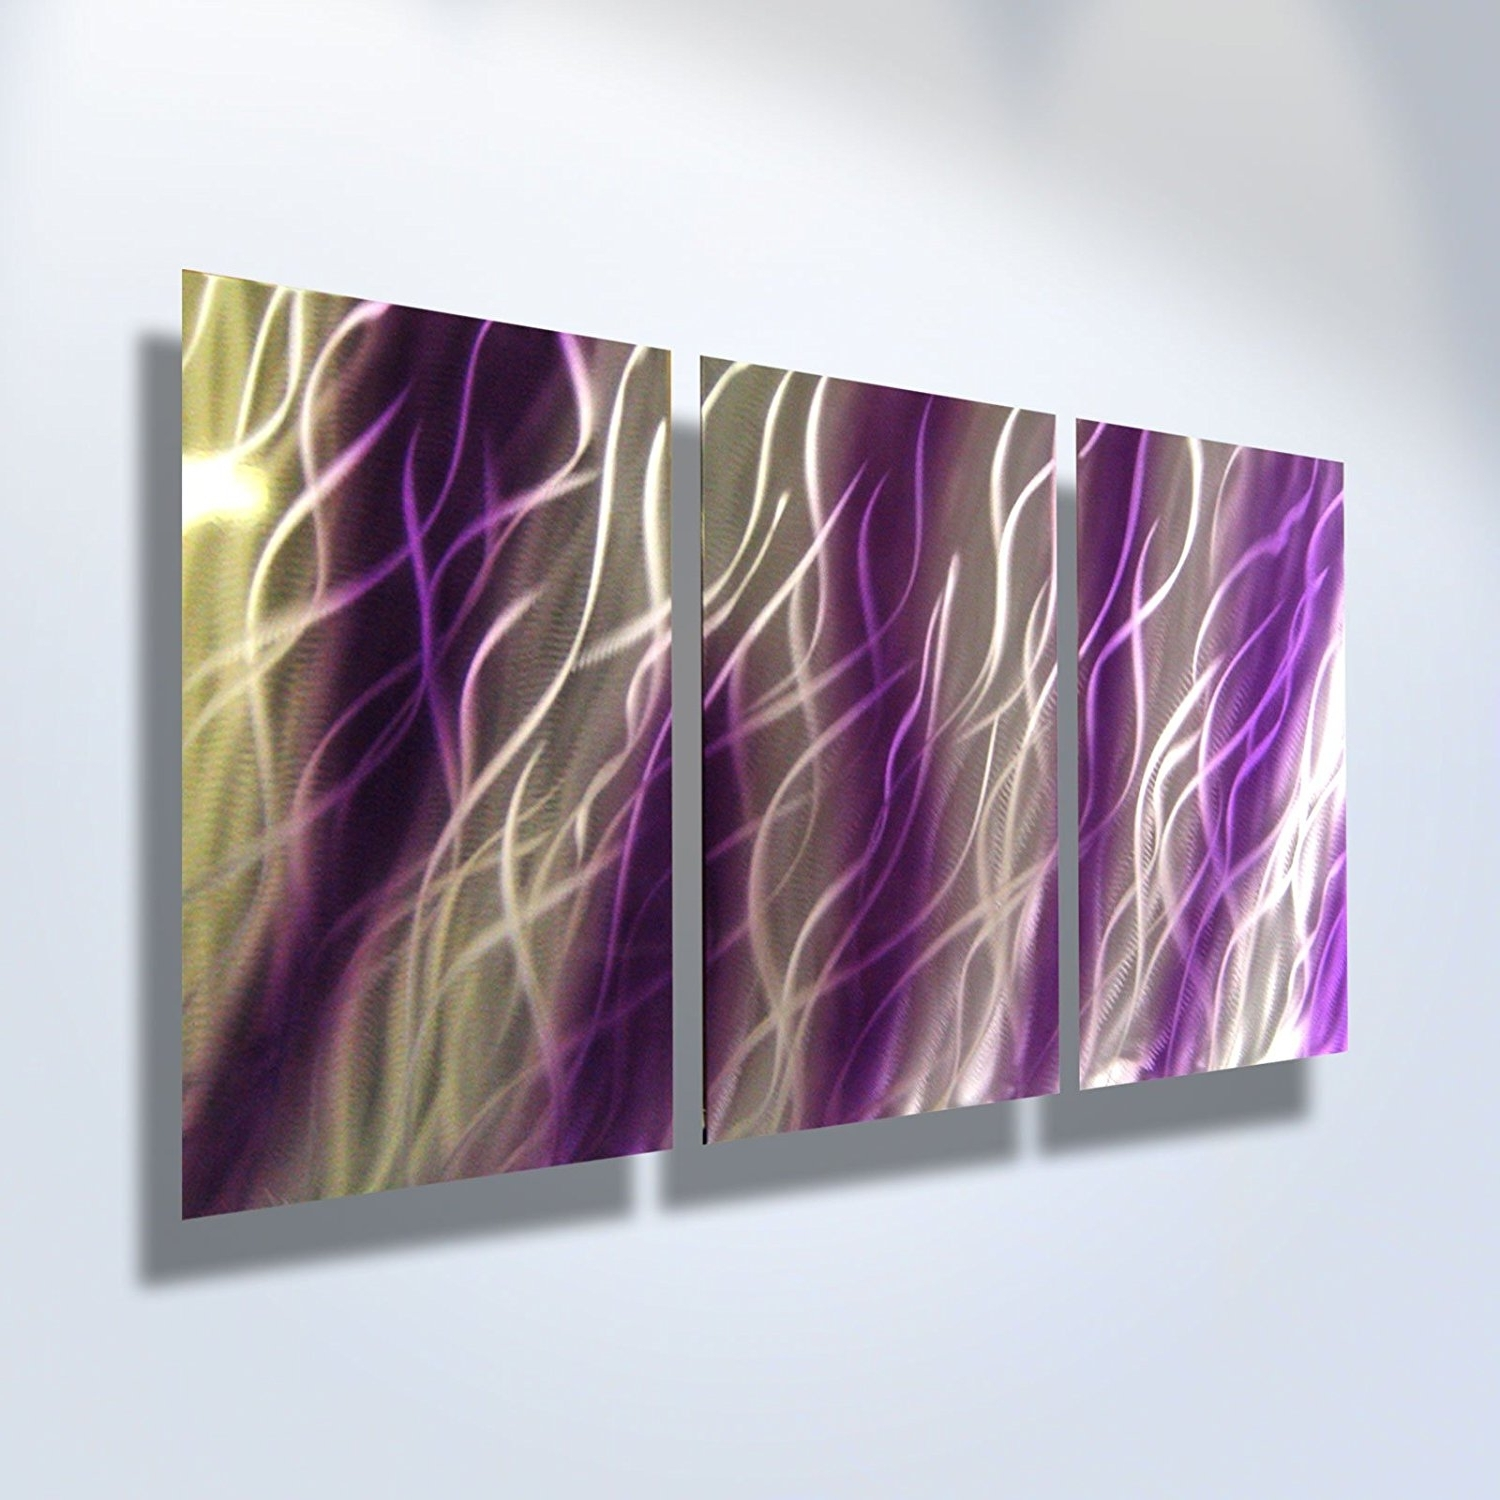 Amazon: Metal Wall Art, Modern Home Decor, Abstract Artwork Pertaining To Most Recent Purple Wall Art (View 1 of 15)